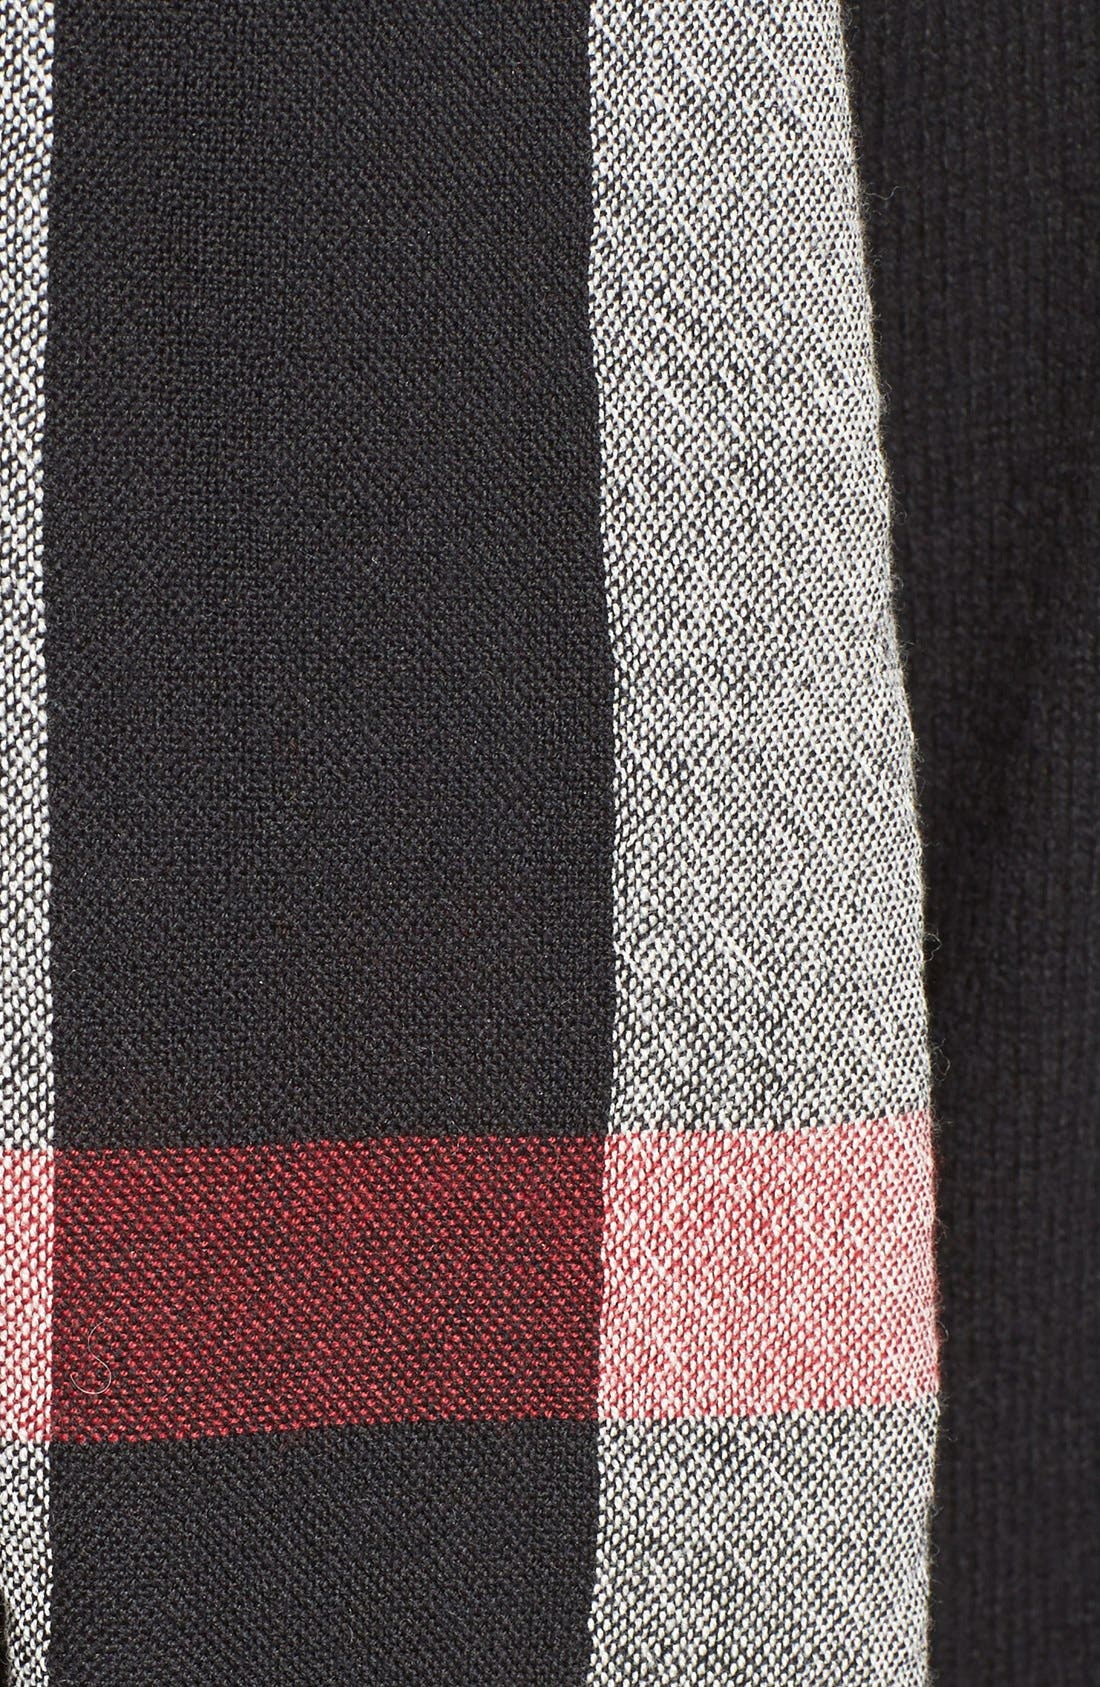 Alternate Image 3  - Burberry Check Merino Wool Scarf (Nordstrom Exclusive)